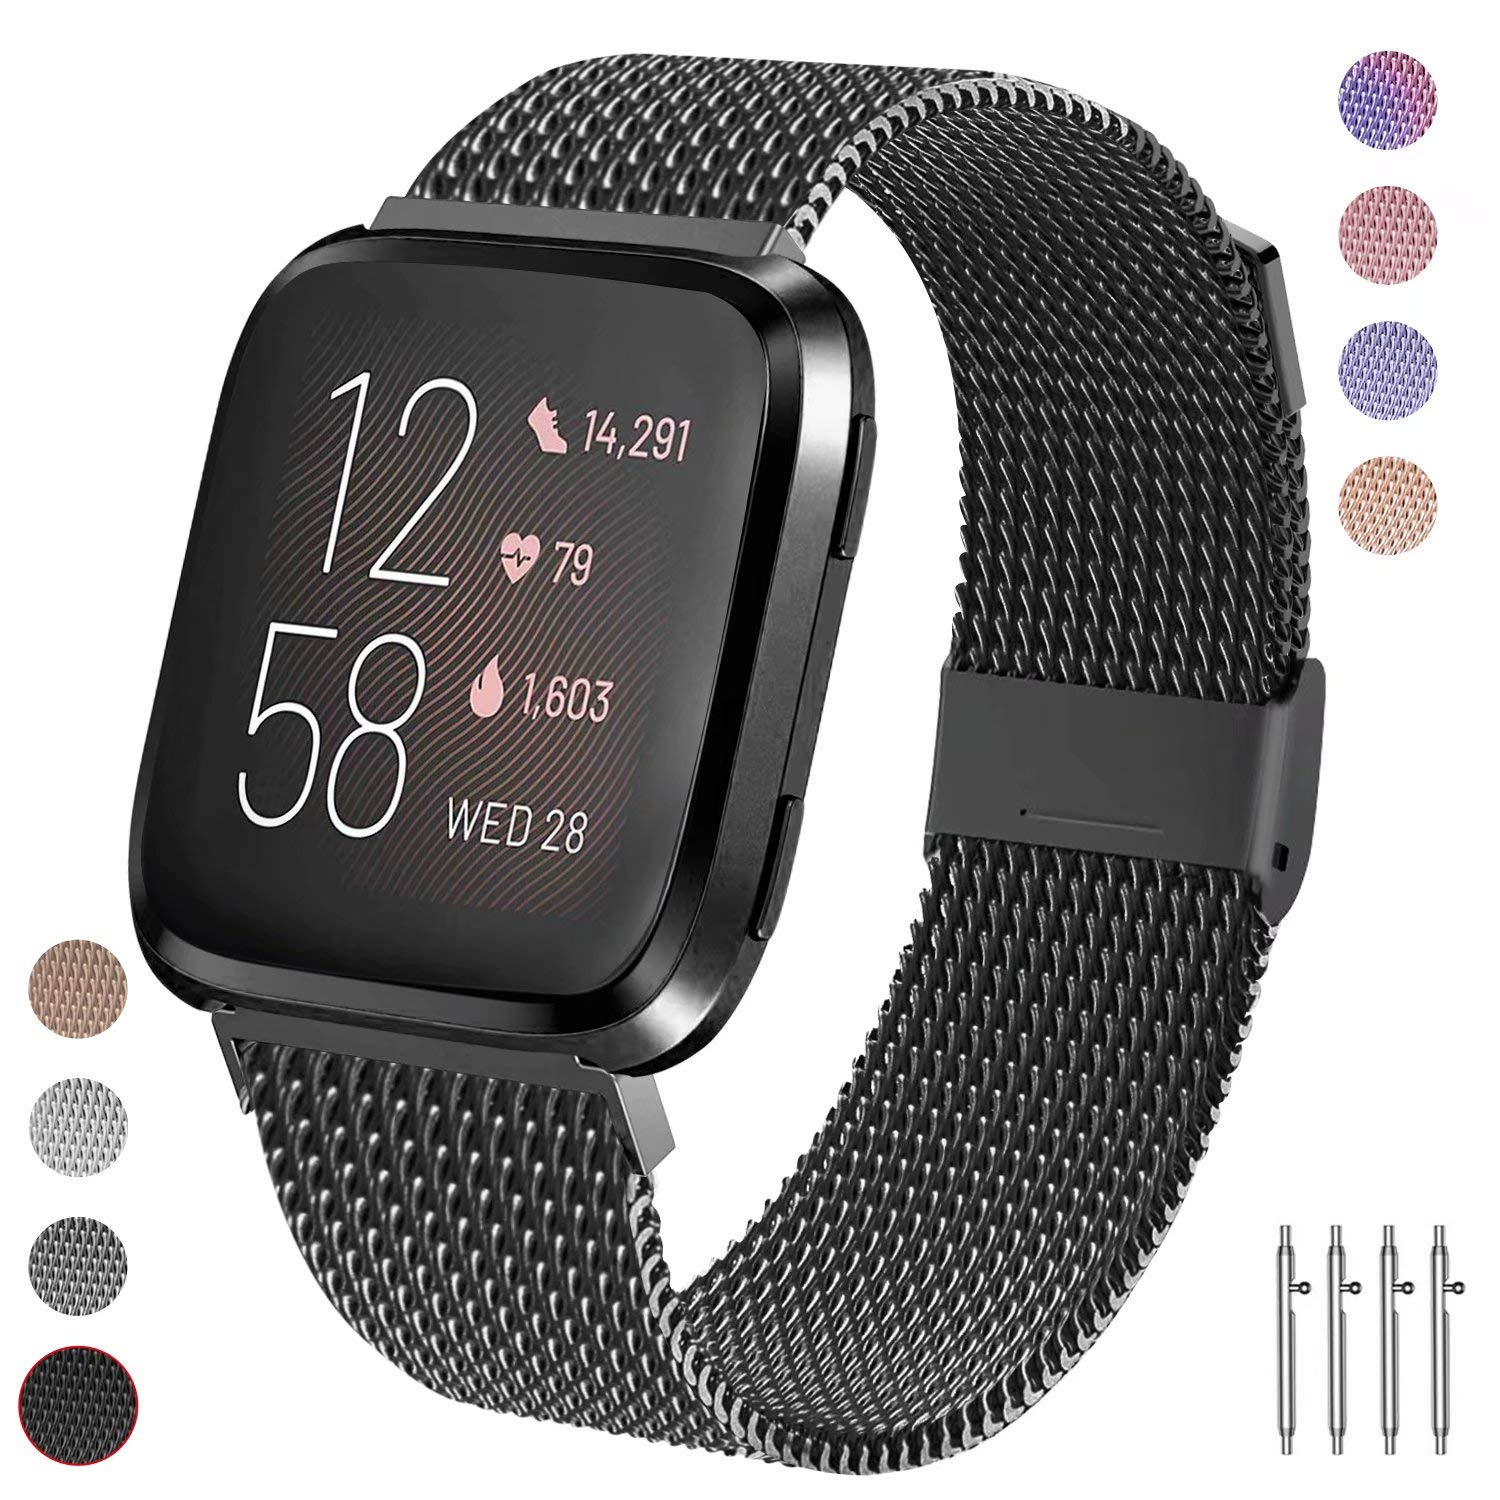 Adjustable Metal Stainless Steel Bands Quick Release Replacement Wriststrap with Unique Magnet Lock for Fitbit Versa Mugust Compatible with Fitbit Versa 2 and Fitbit Versa//Versa Lite Edition Strap